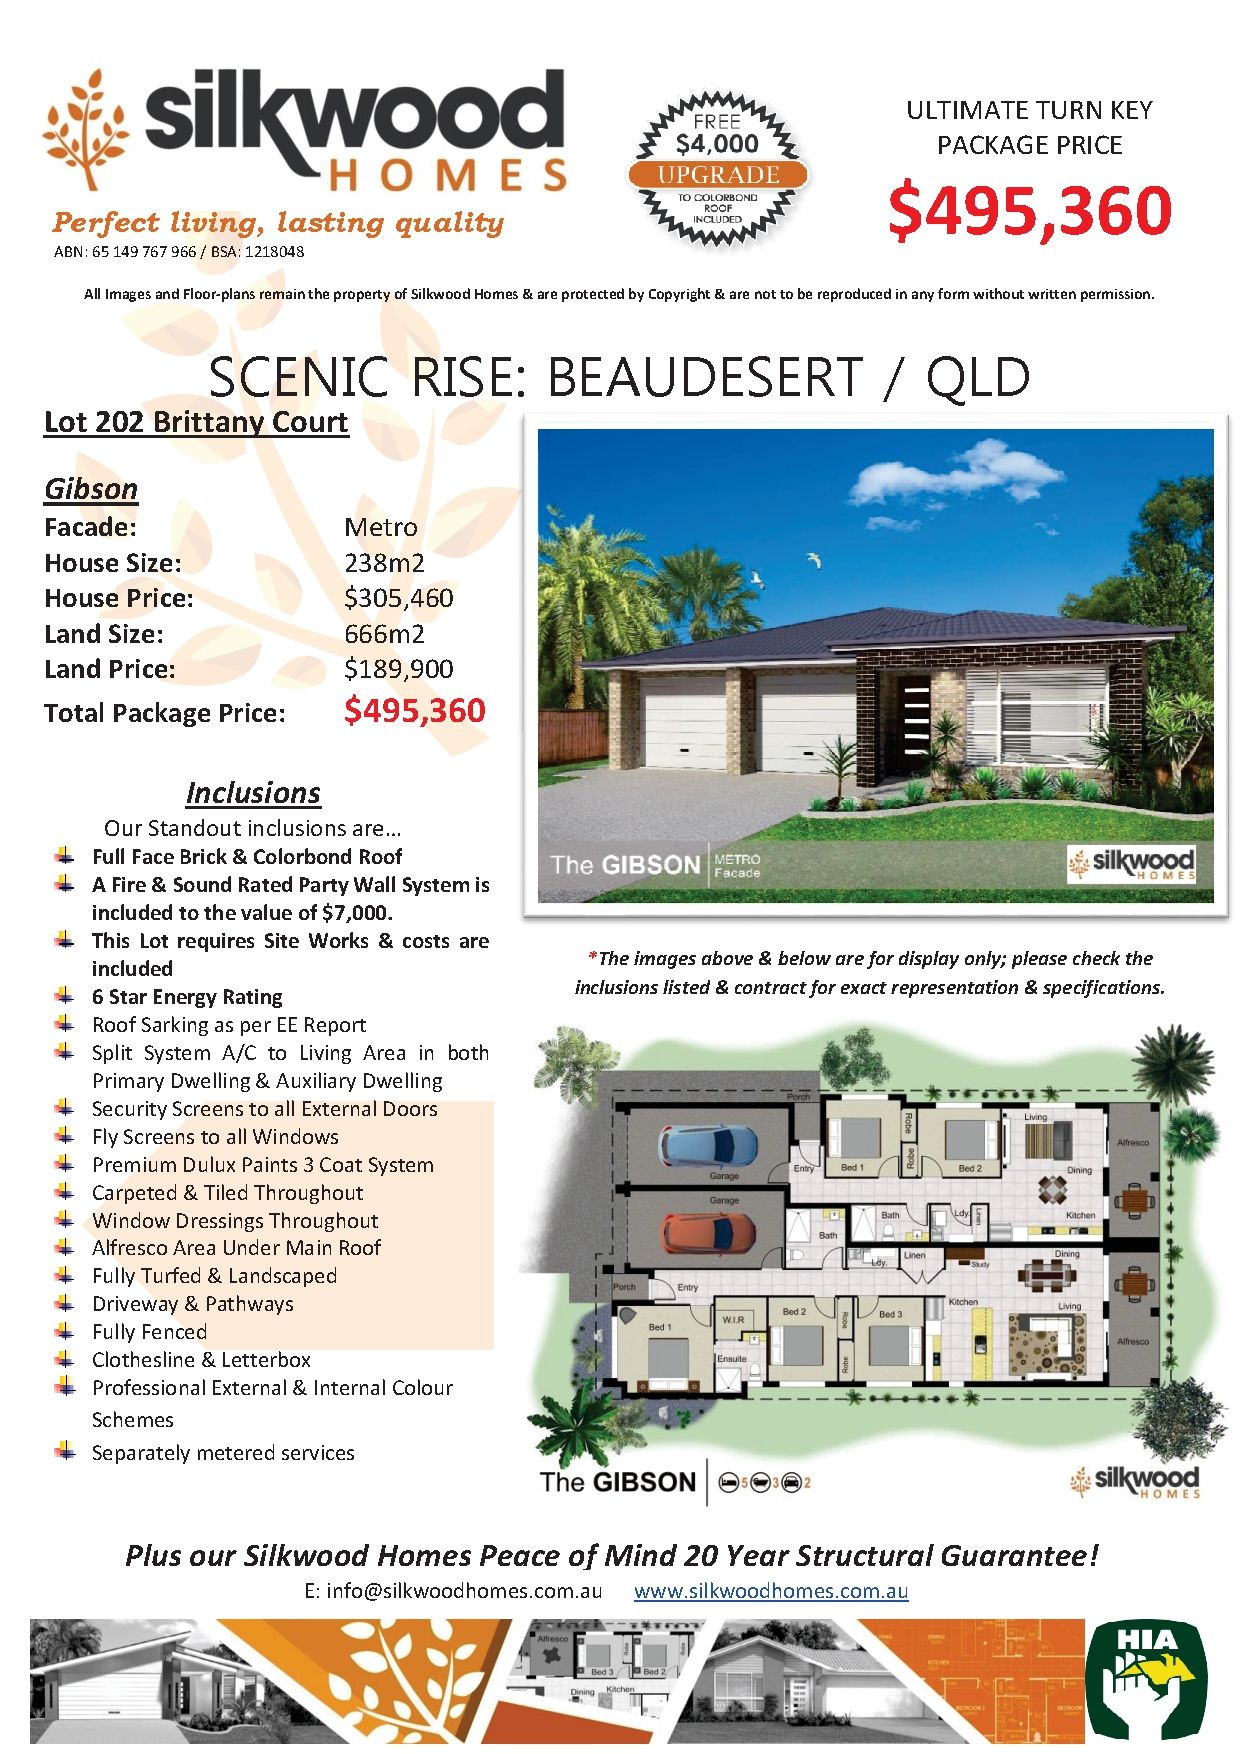 Looking for great returns on investment one of our most popular looking for great returns on investment one of our most popular dual living designs the gibson situated in scenic rise beaudesert at an ultimate turn malvernweather Image collections